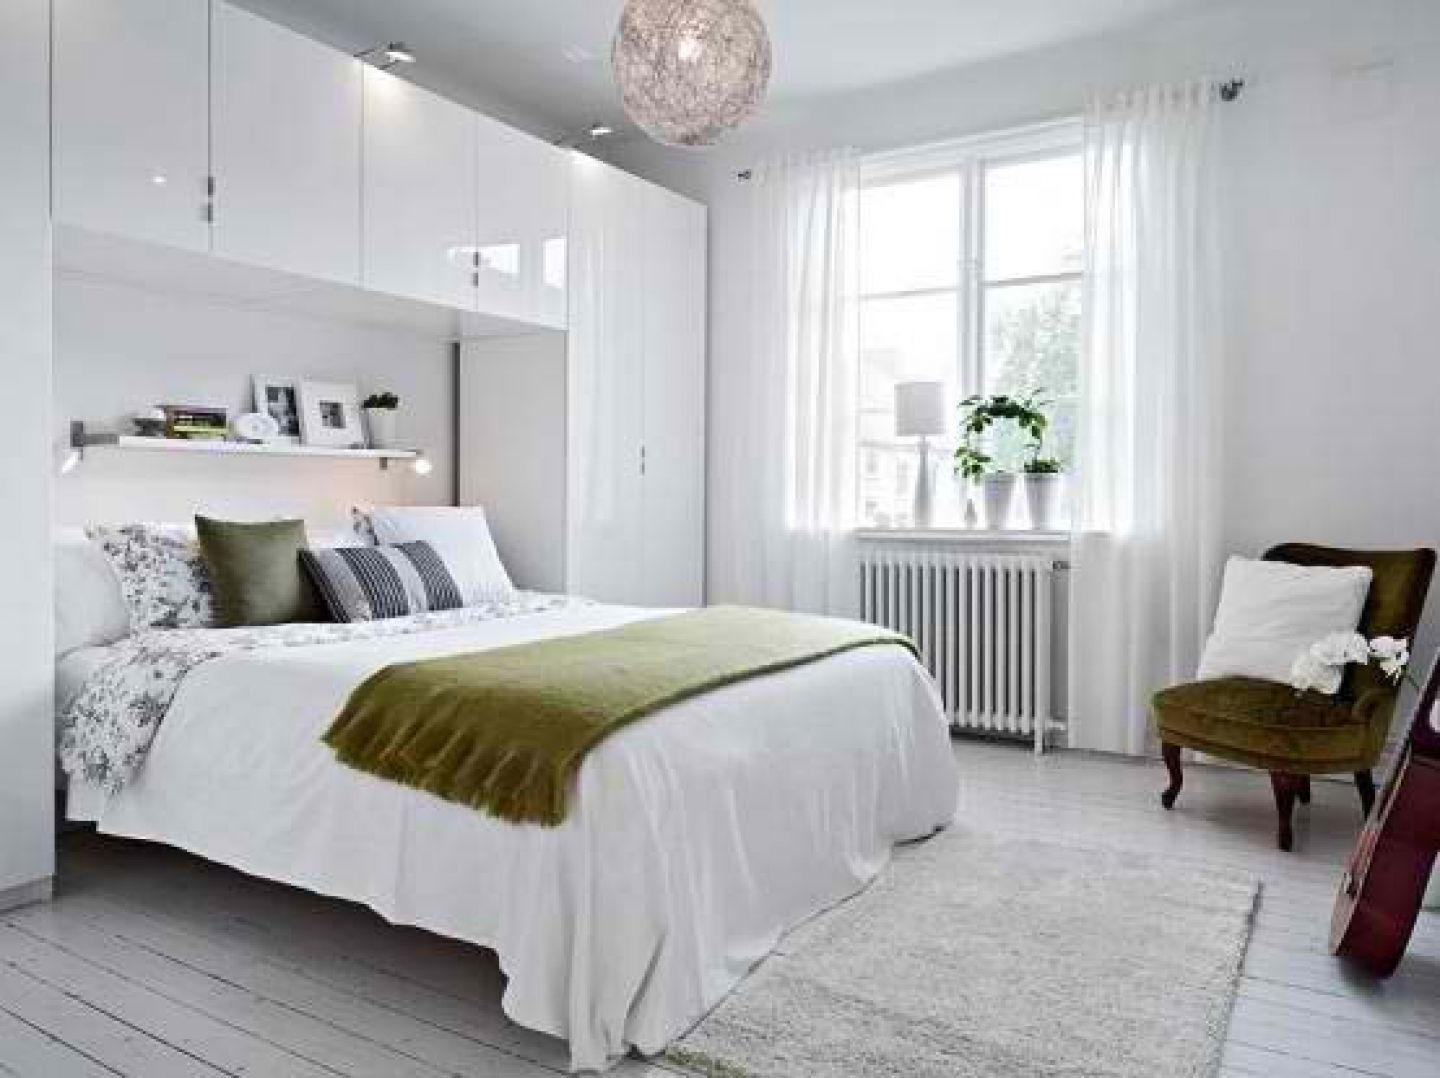 30 Home Decorating Ideas For Small Apartments | Apartments ...